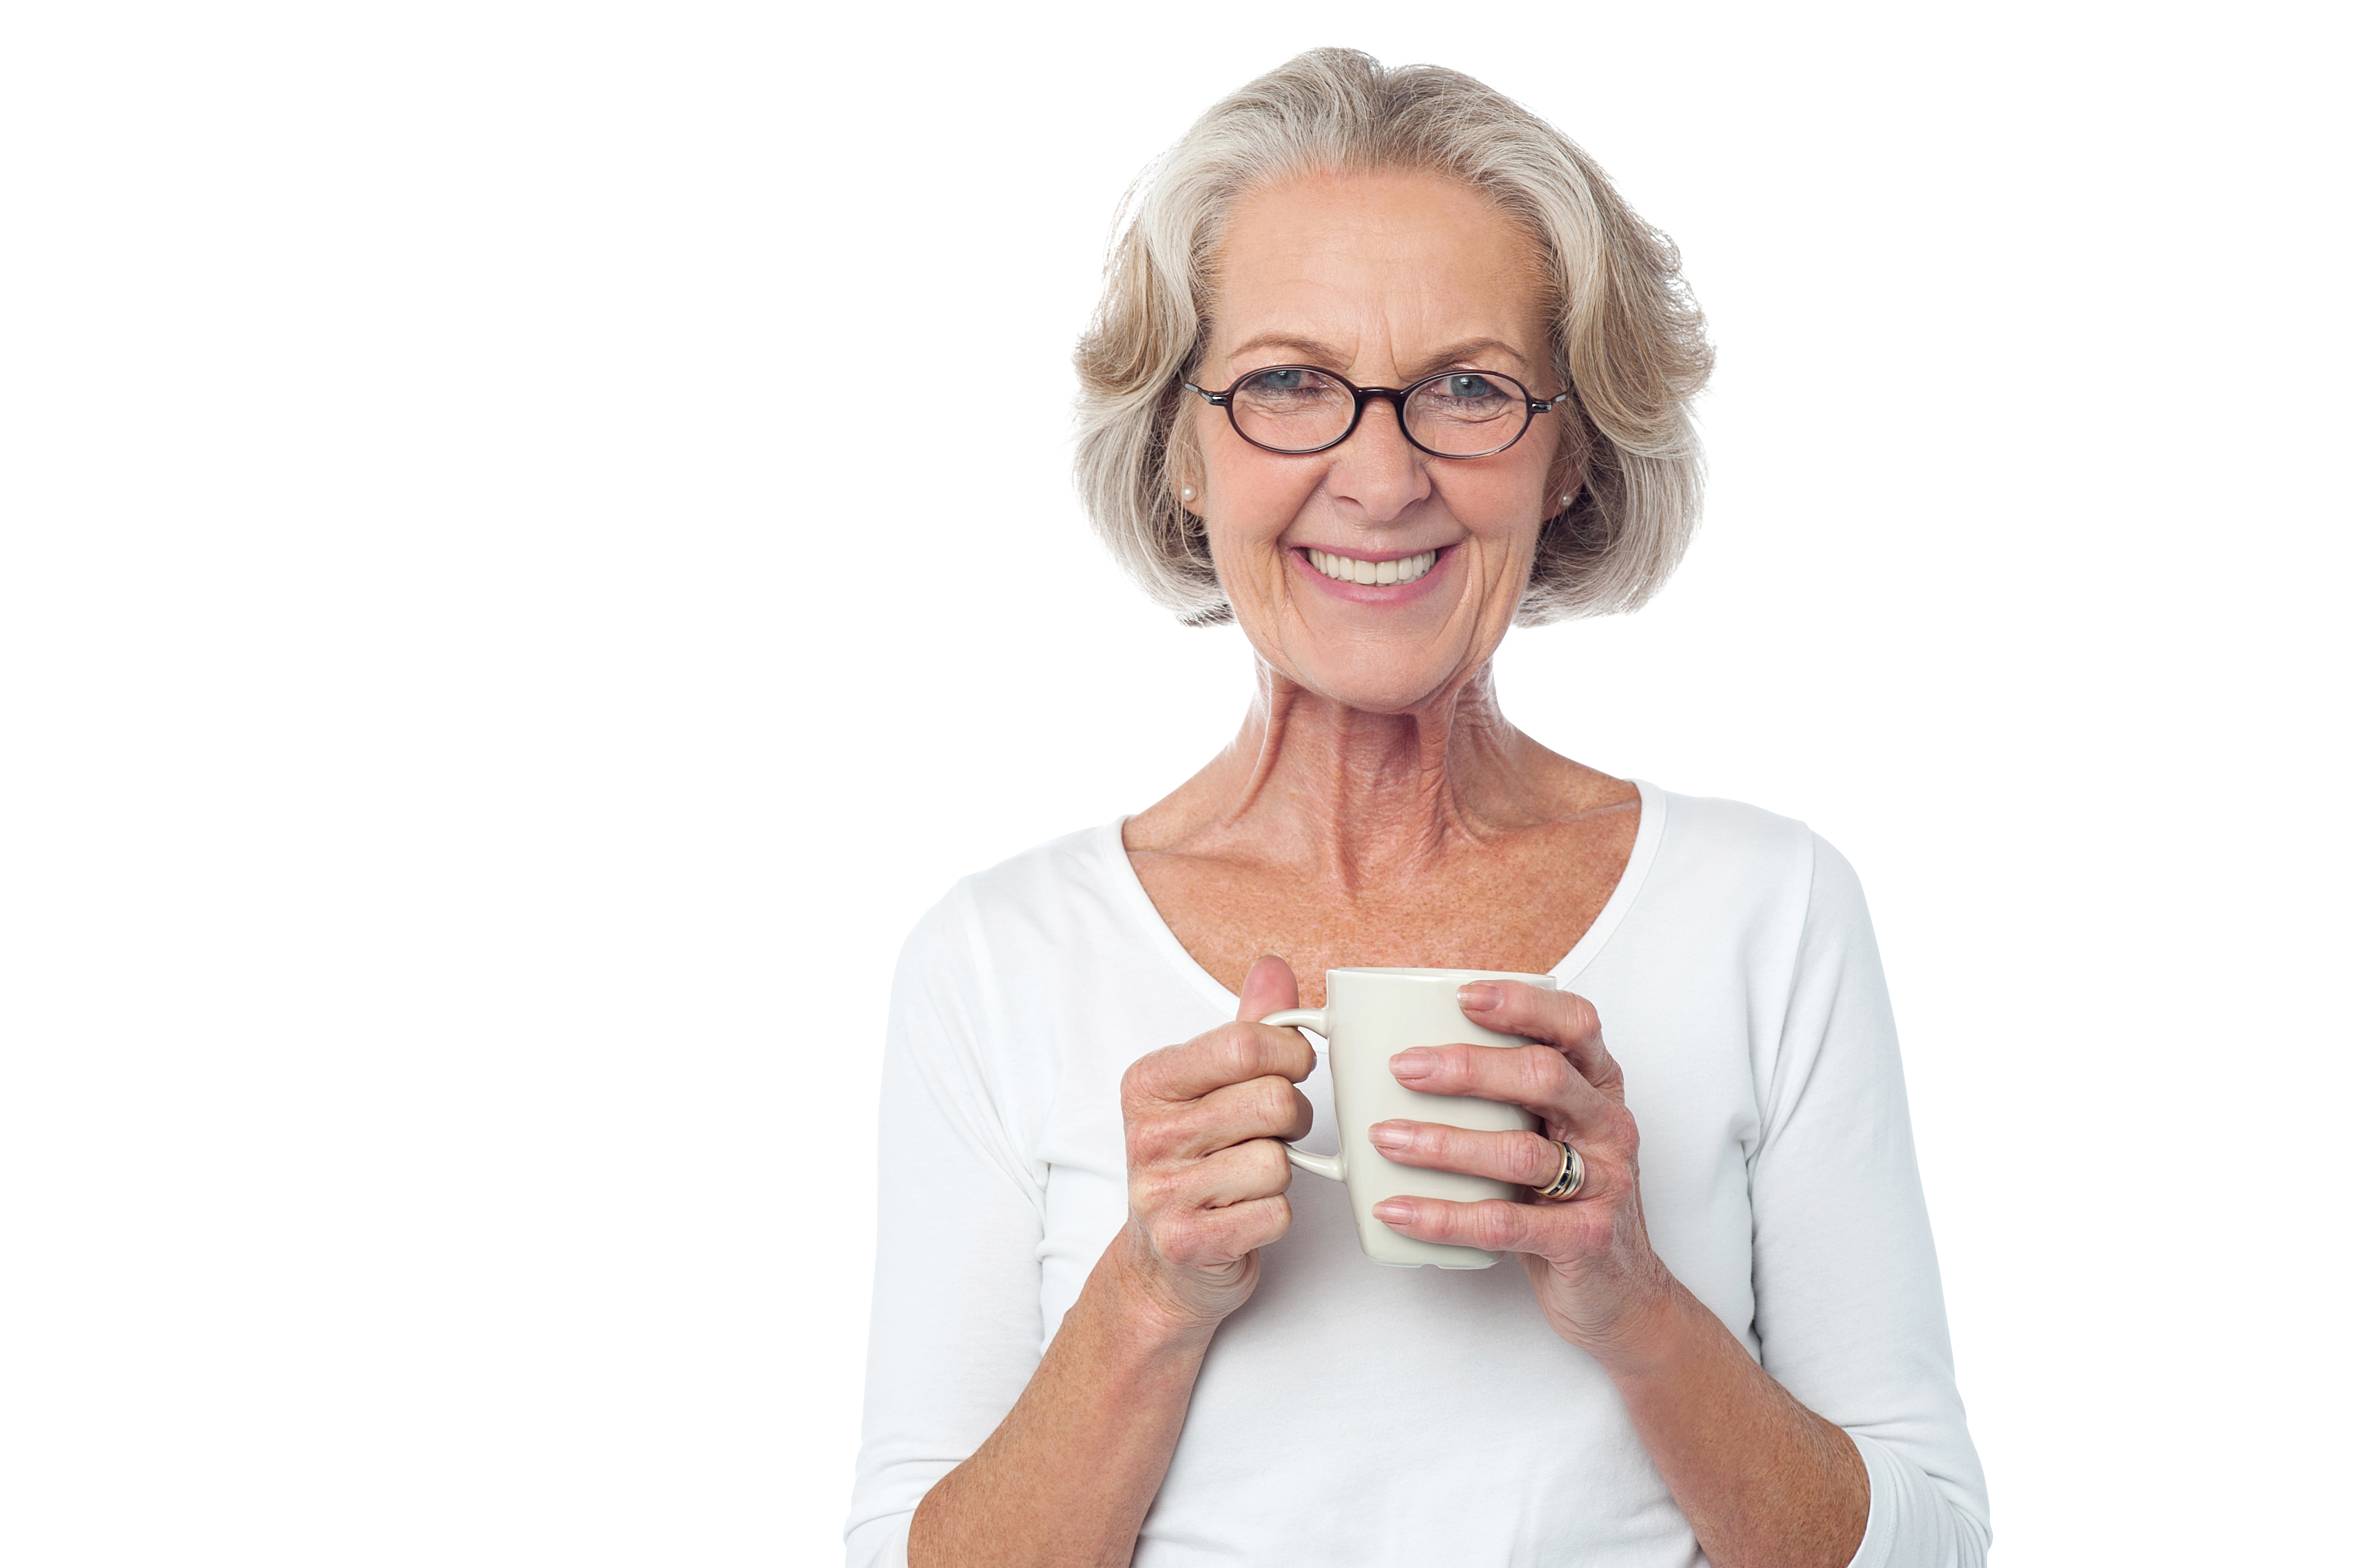 Old woman png. Transparent images pluspng image